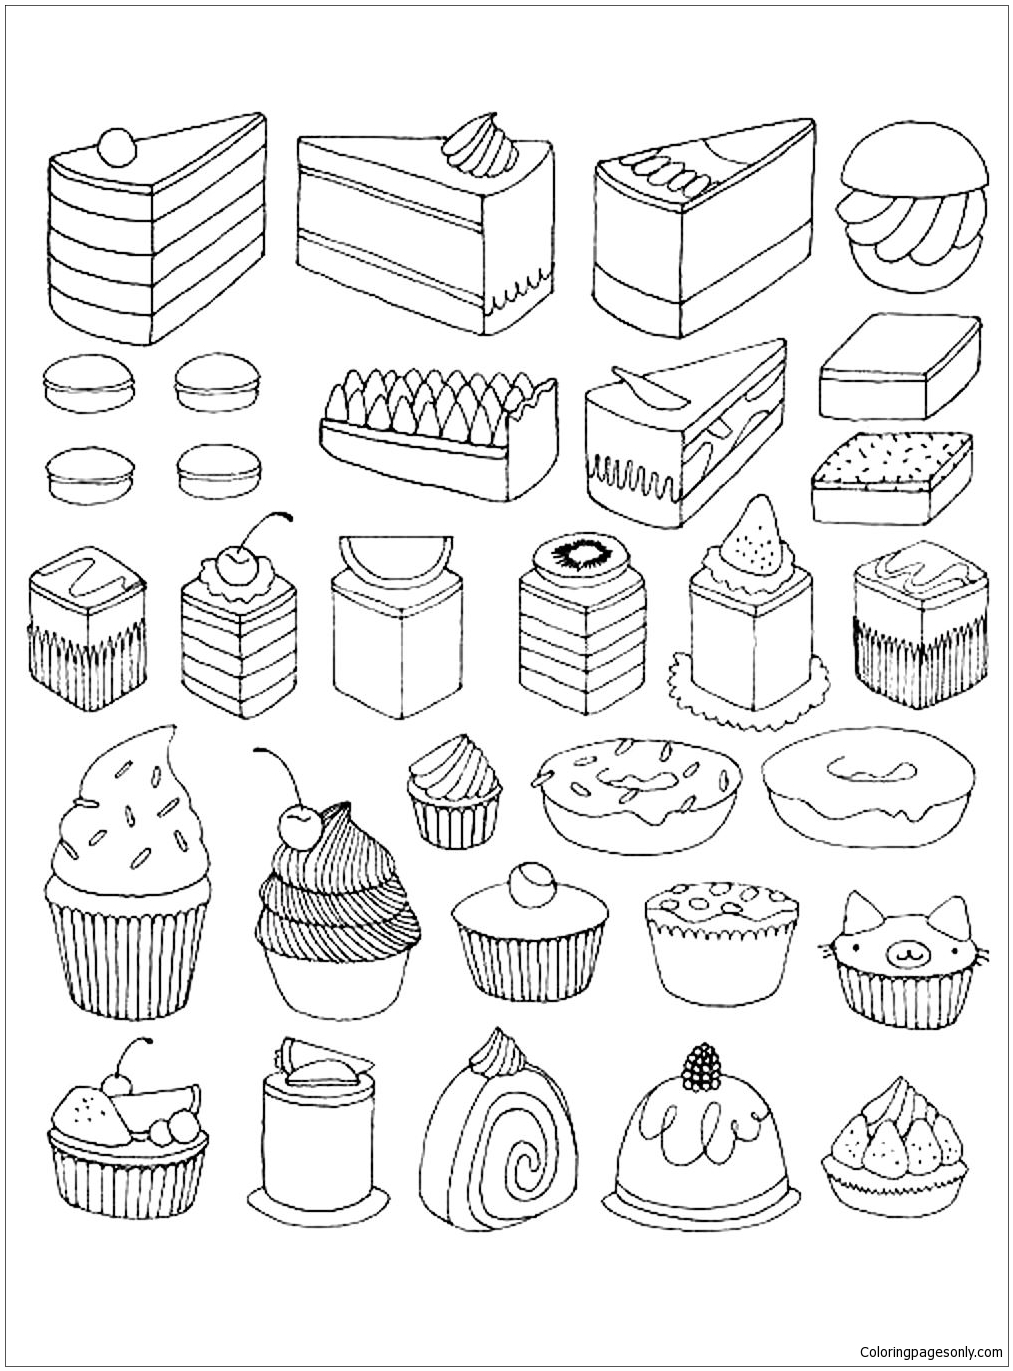 Cake Desserts Coloring Page - Free Coloring Pages Online